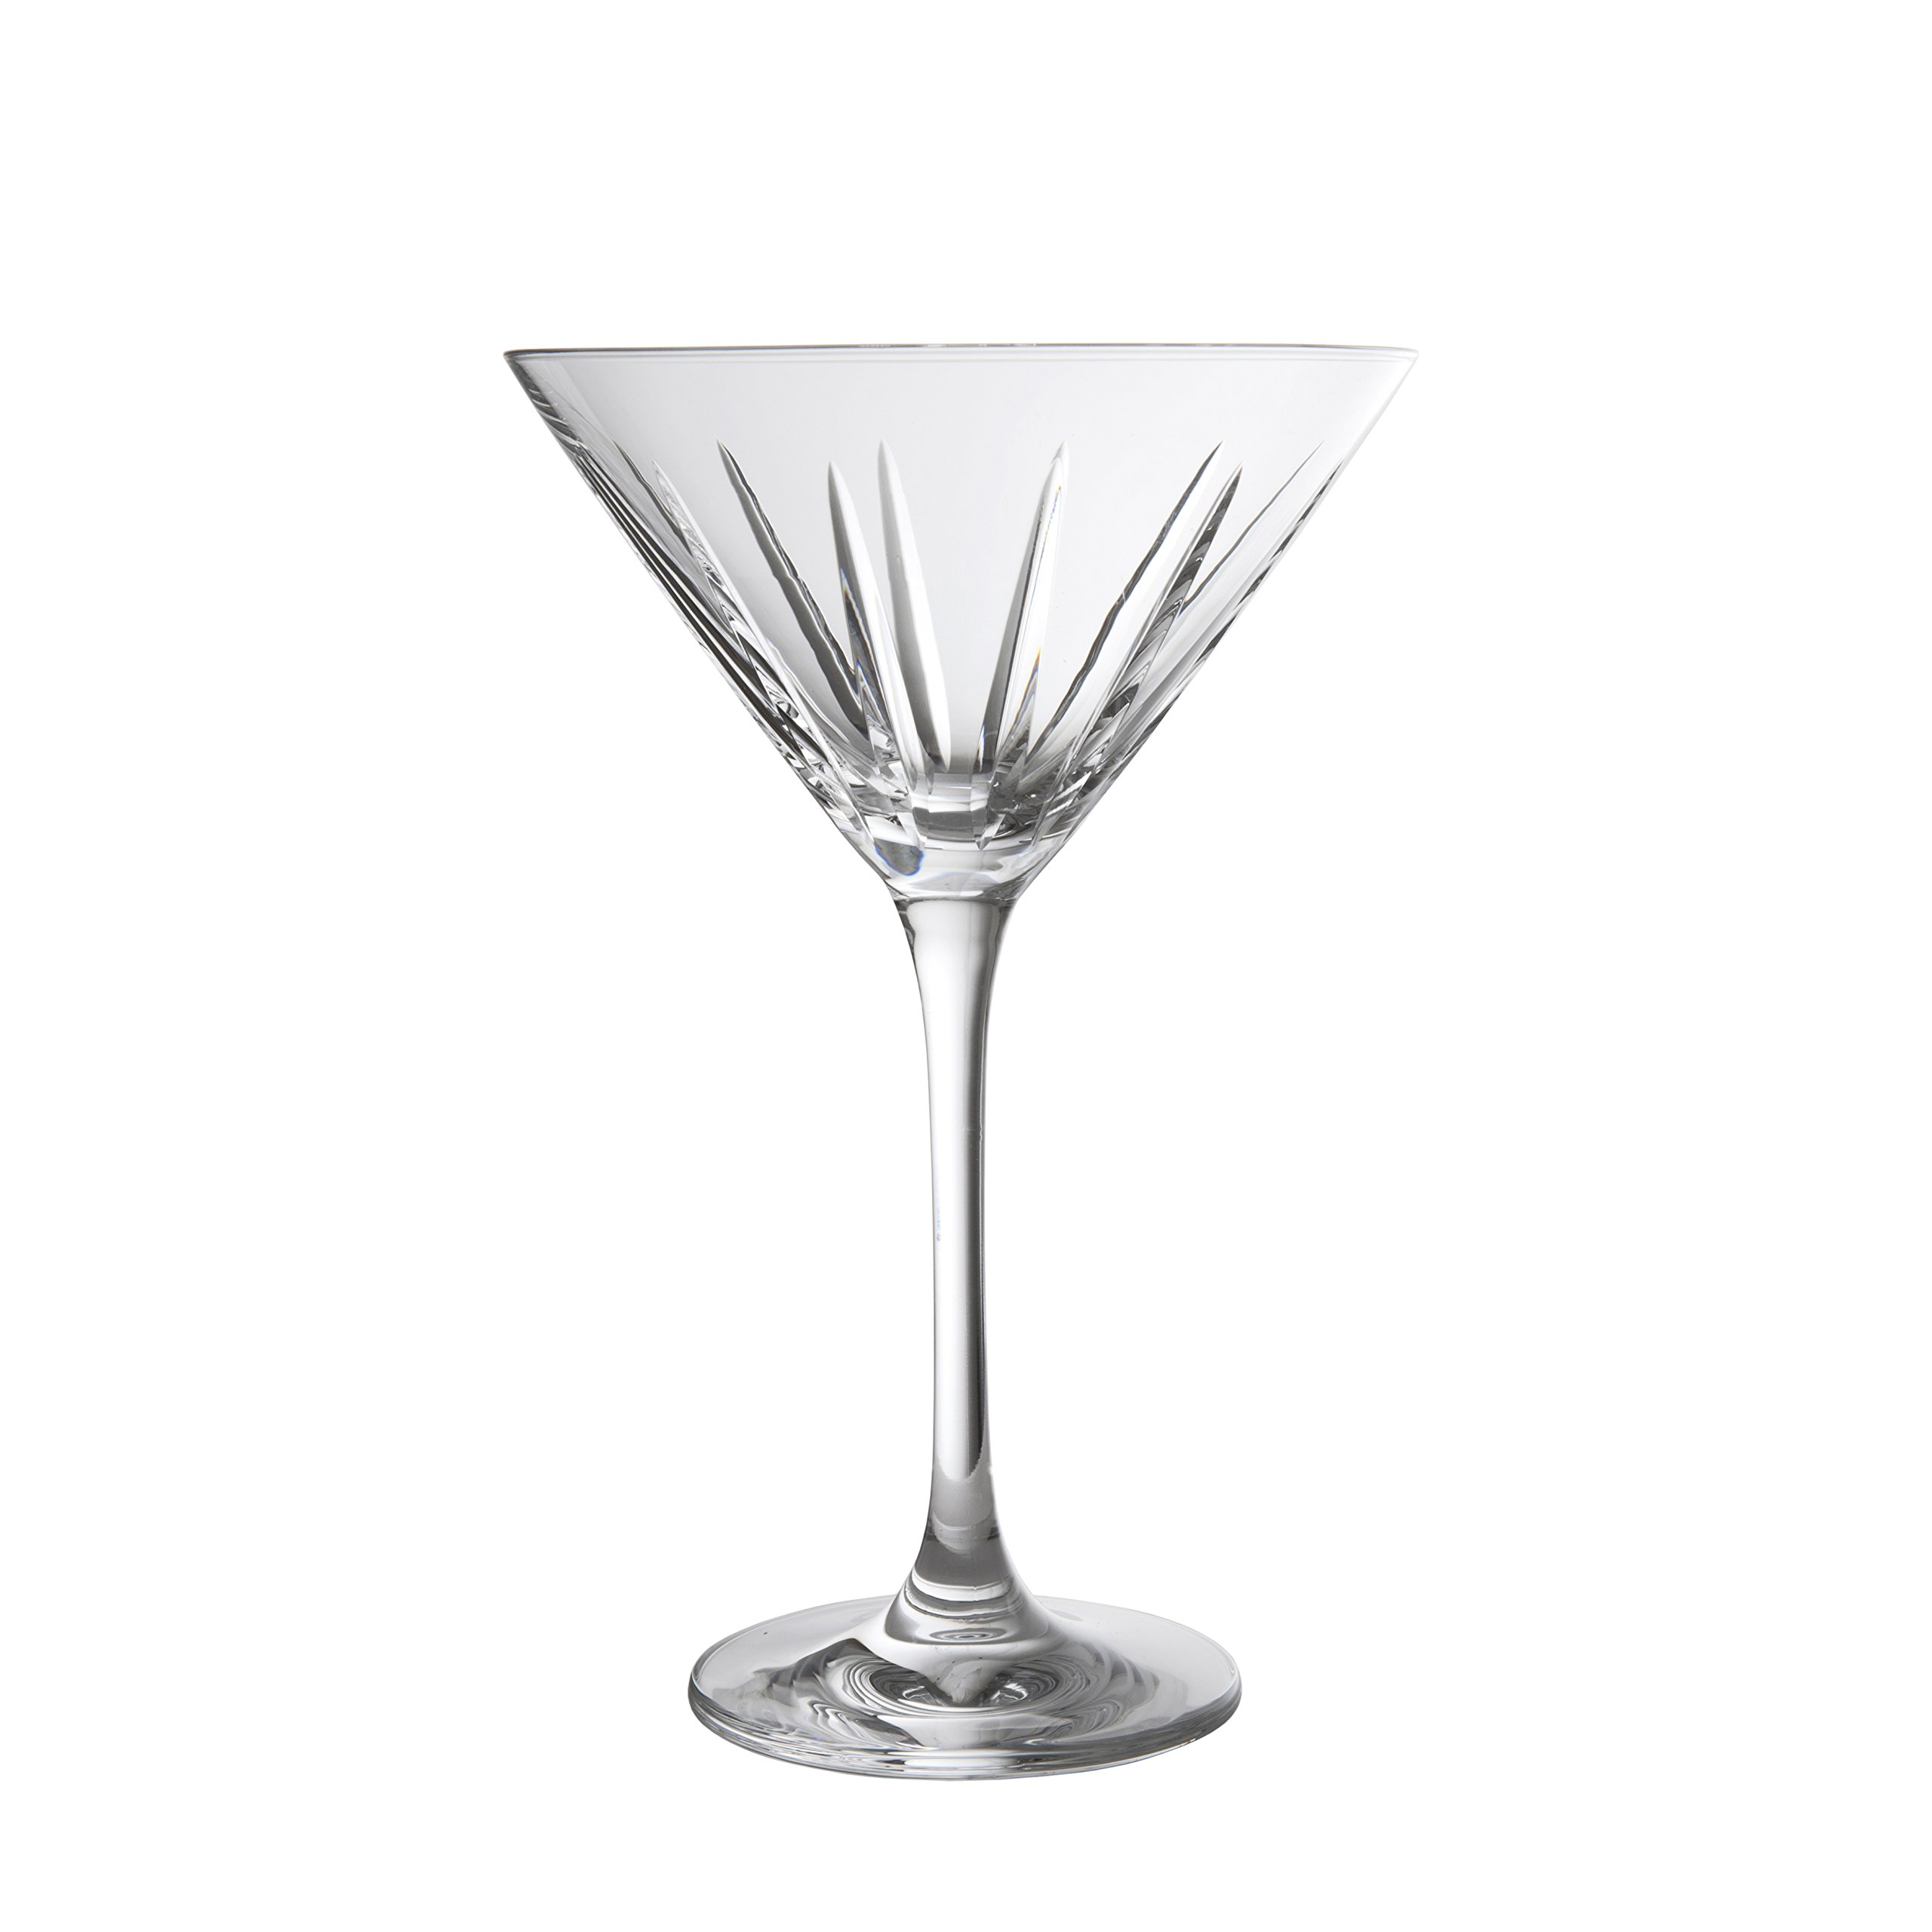 Schott Zwiesel Tritan Crystal Glass Distil Barware Collection Kirkwall Martini Cocktail Glasses (Set of 6), 8.5 oz, Clear